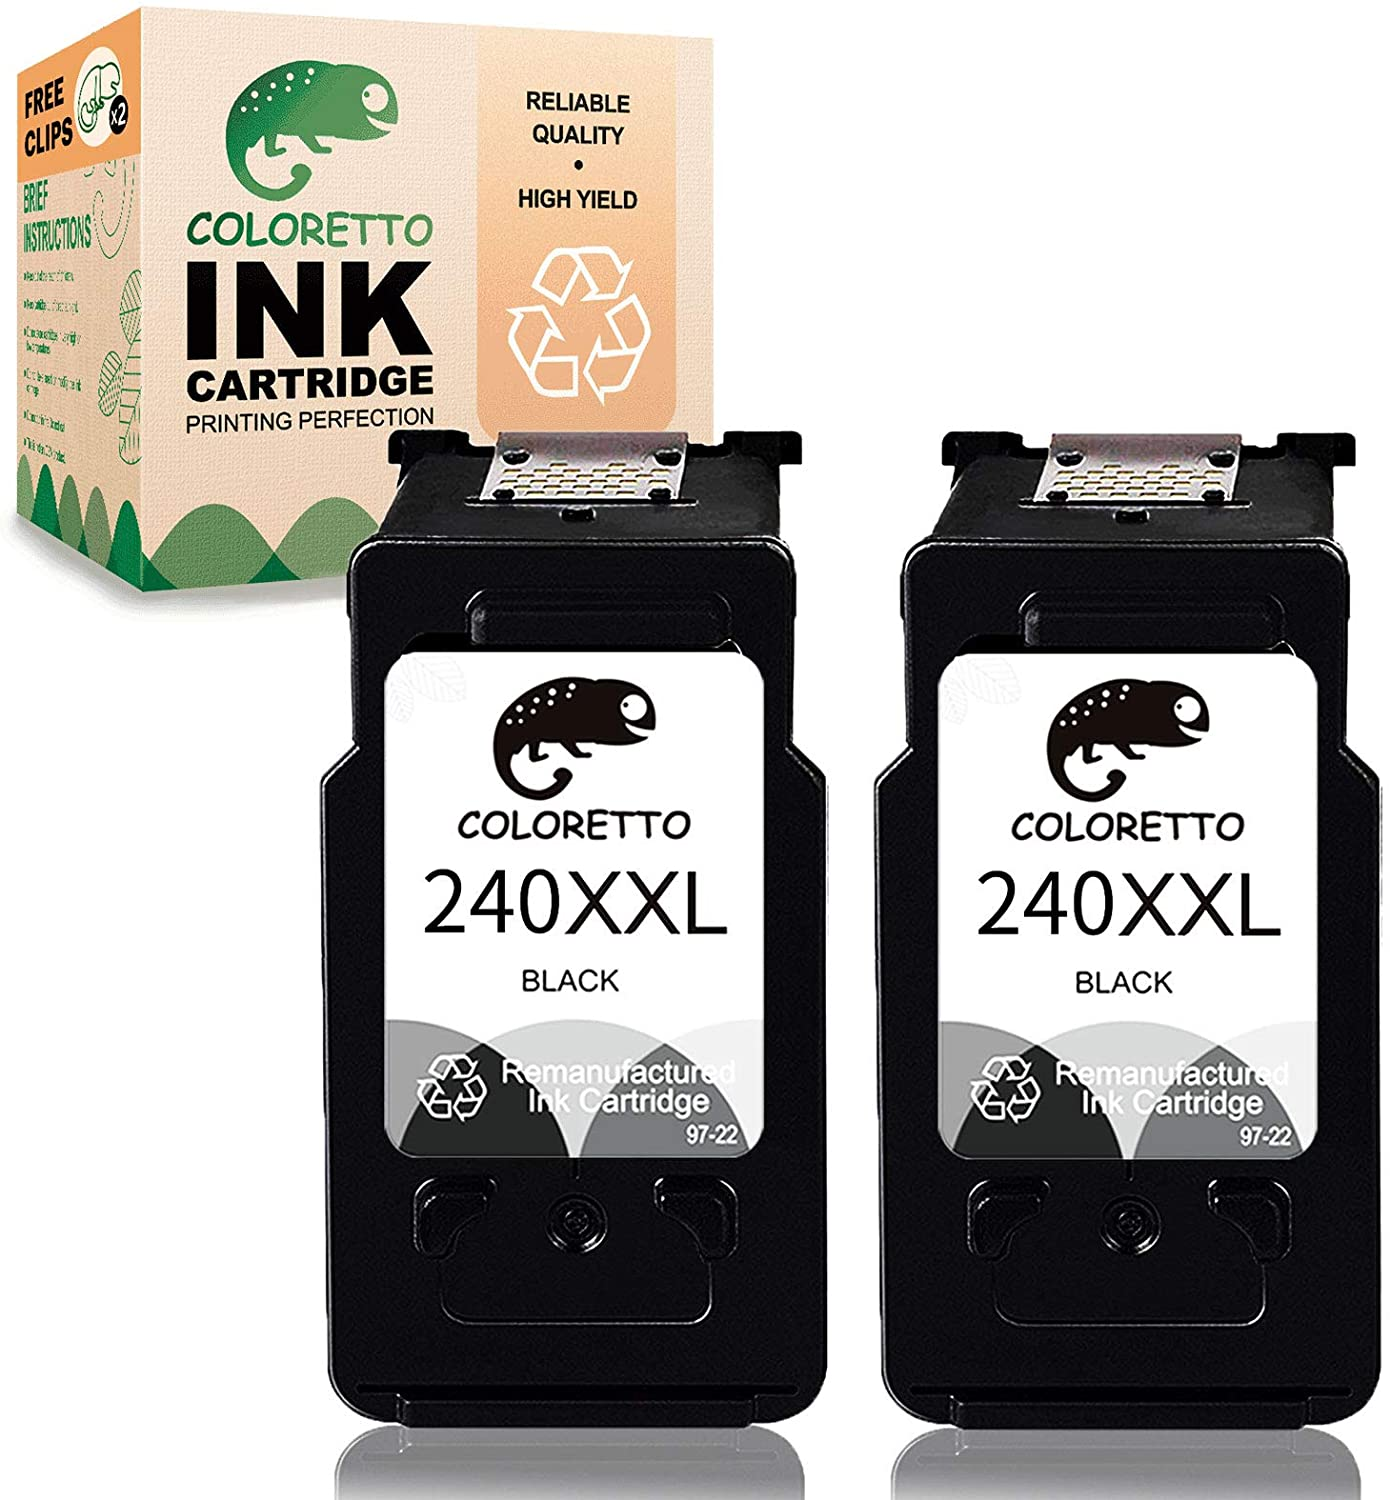 COLORETTO Remanufactured Printer Ink Cartridge Replacement for Canon PG-240XXL,240 XL 240 XXL to use with Pixma MX472 MX452 MX532 MX432 MX512 MG3620 MG3522 MG2120 MG2220 MG3220 (2 Black) Combo Pack